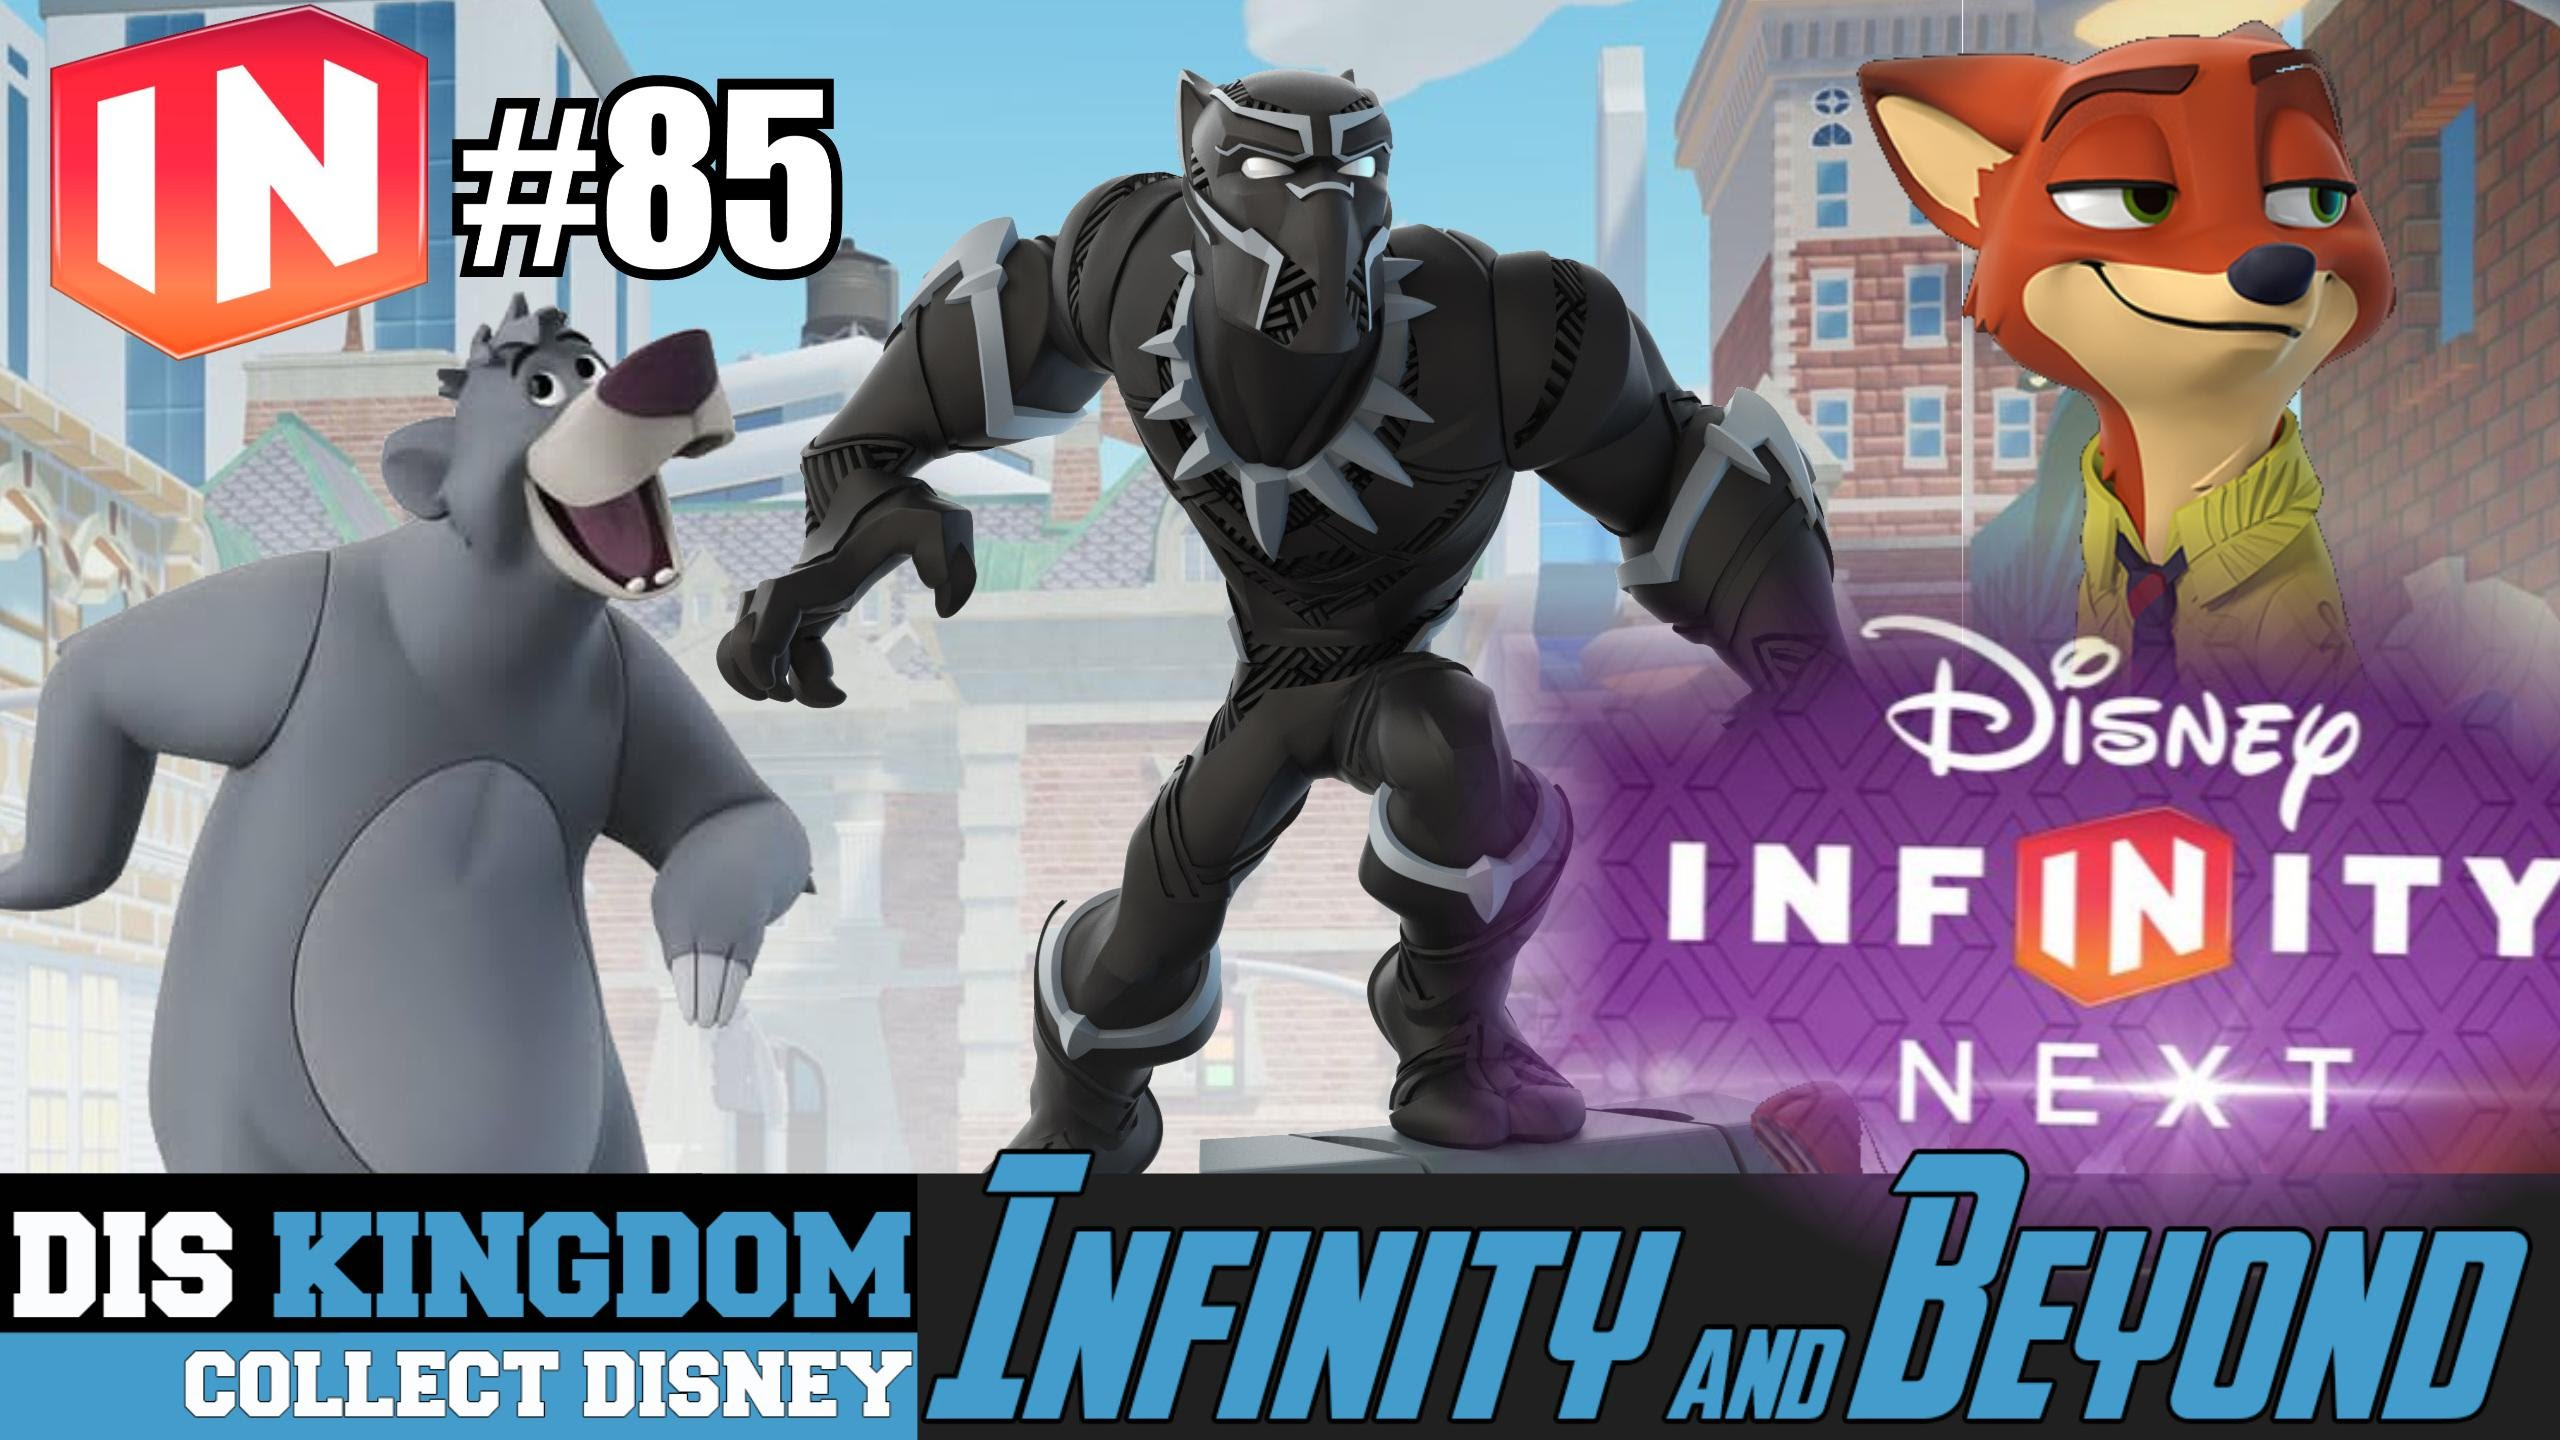 Disney Infinity 3.0 & Beyond #85 – Zootopia, Marvel Battlegrounds & Disney Infinity NEXT